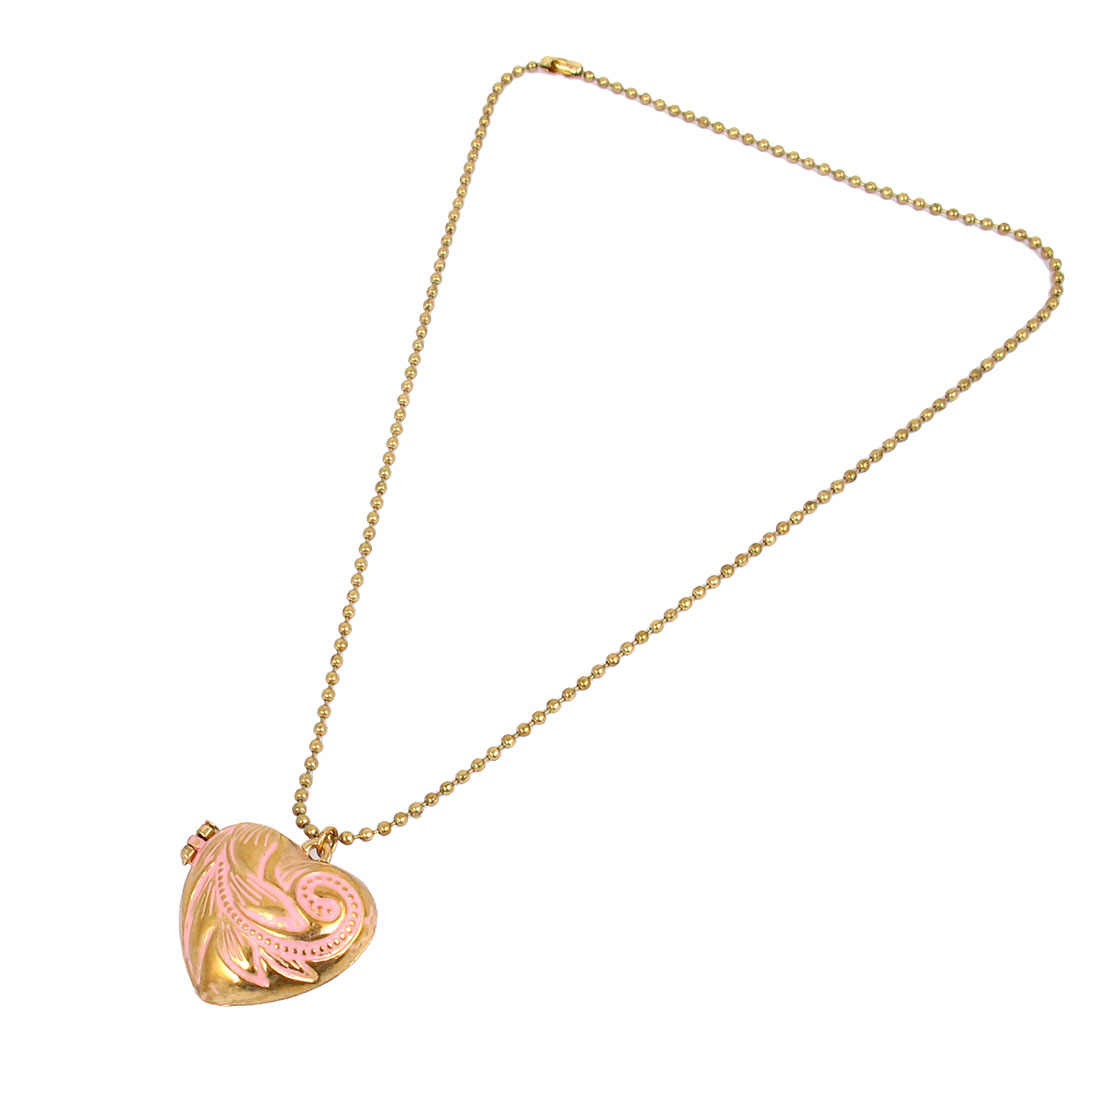 Women Metal Heart Shape Design Pendant Slim Beads Chain Necklace Neckwear Collar Gold Tone Pink